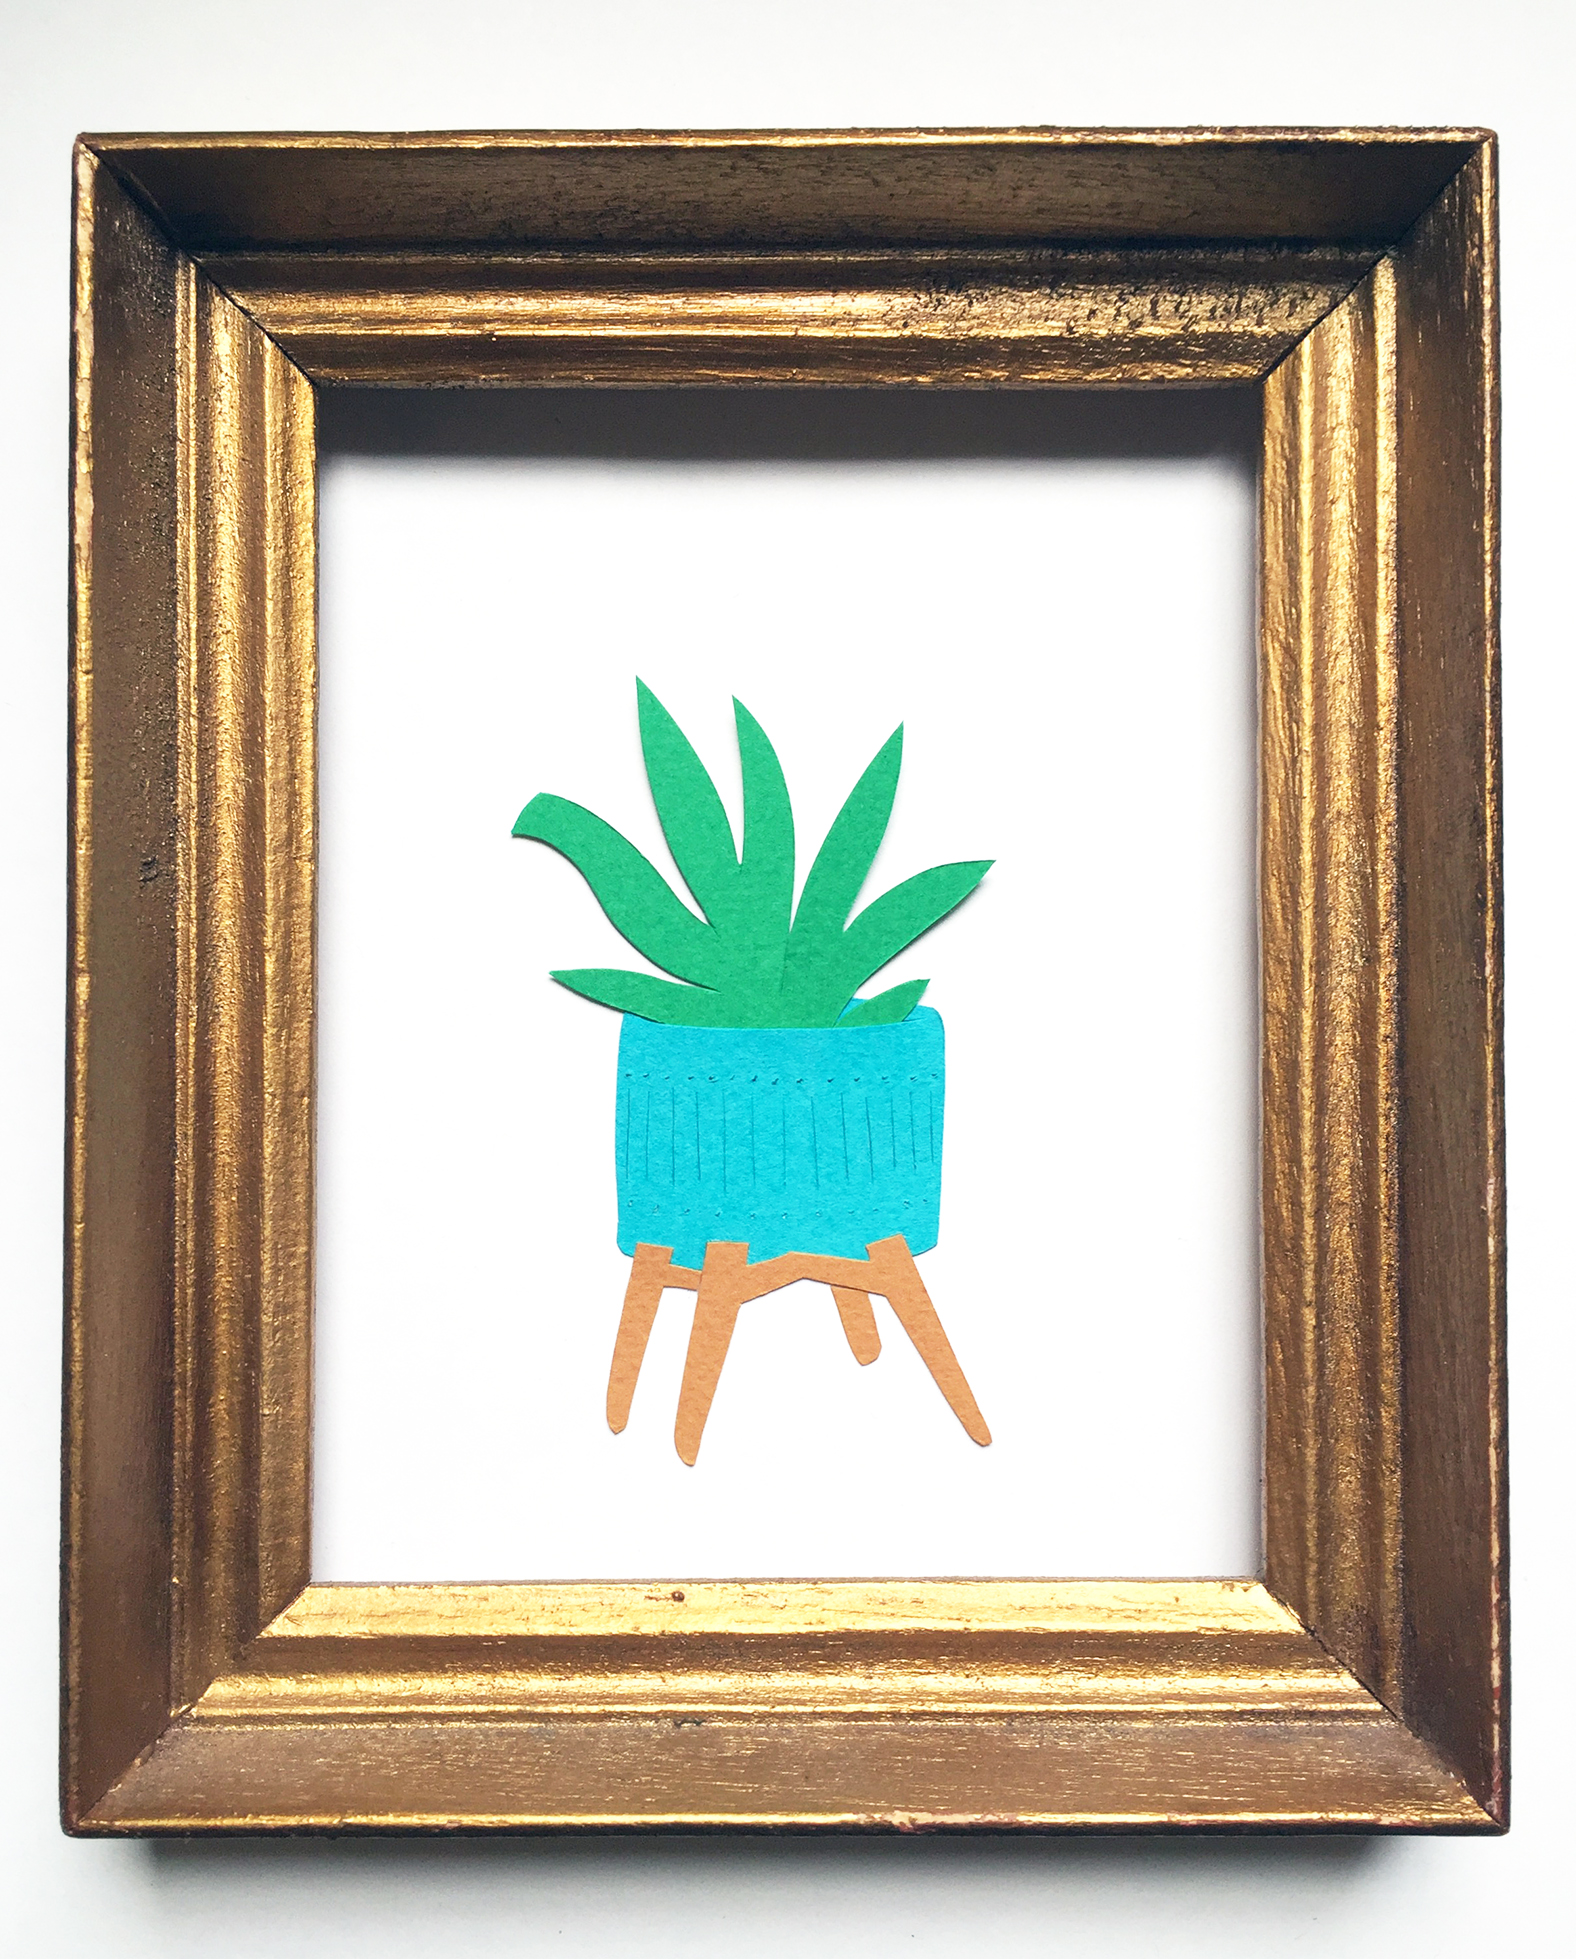 Potted Plant by Kate Zaremba